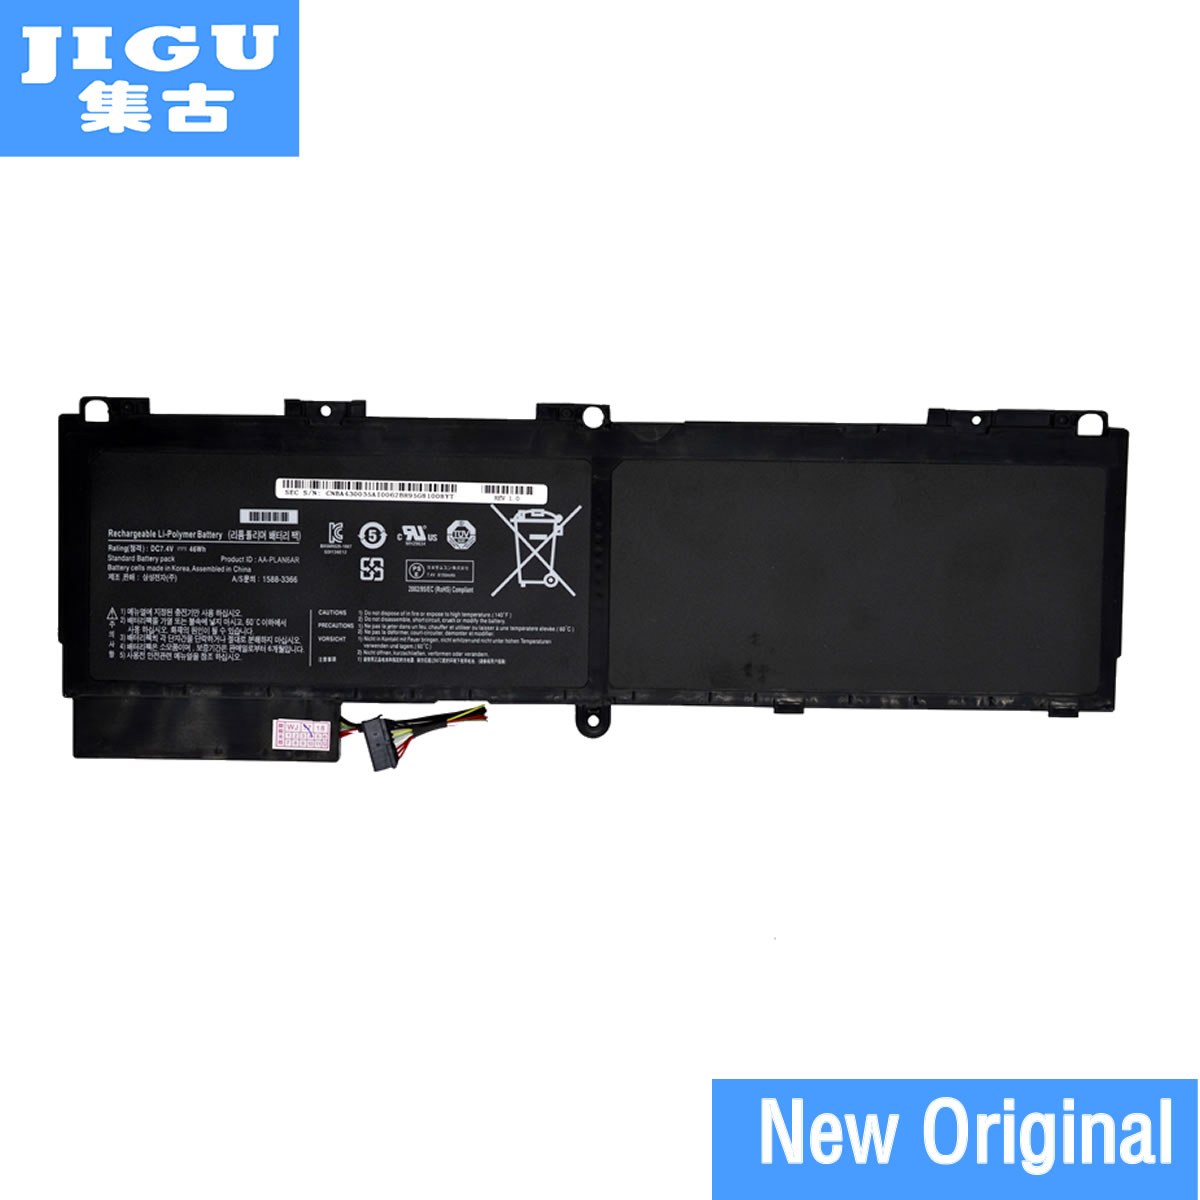 JIGU AA-PLAN6AR Original Laptop Battery For SAMSUNG 900X1 900X1B-A01 900X1BA01 900X3 Series 900X3AA01 new 7 4v 8400mah 62wh aa pbxn8ar battery for samsung np900x4 900x4b a01de 900x4c a01 900x4b a02us free shipping